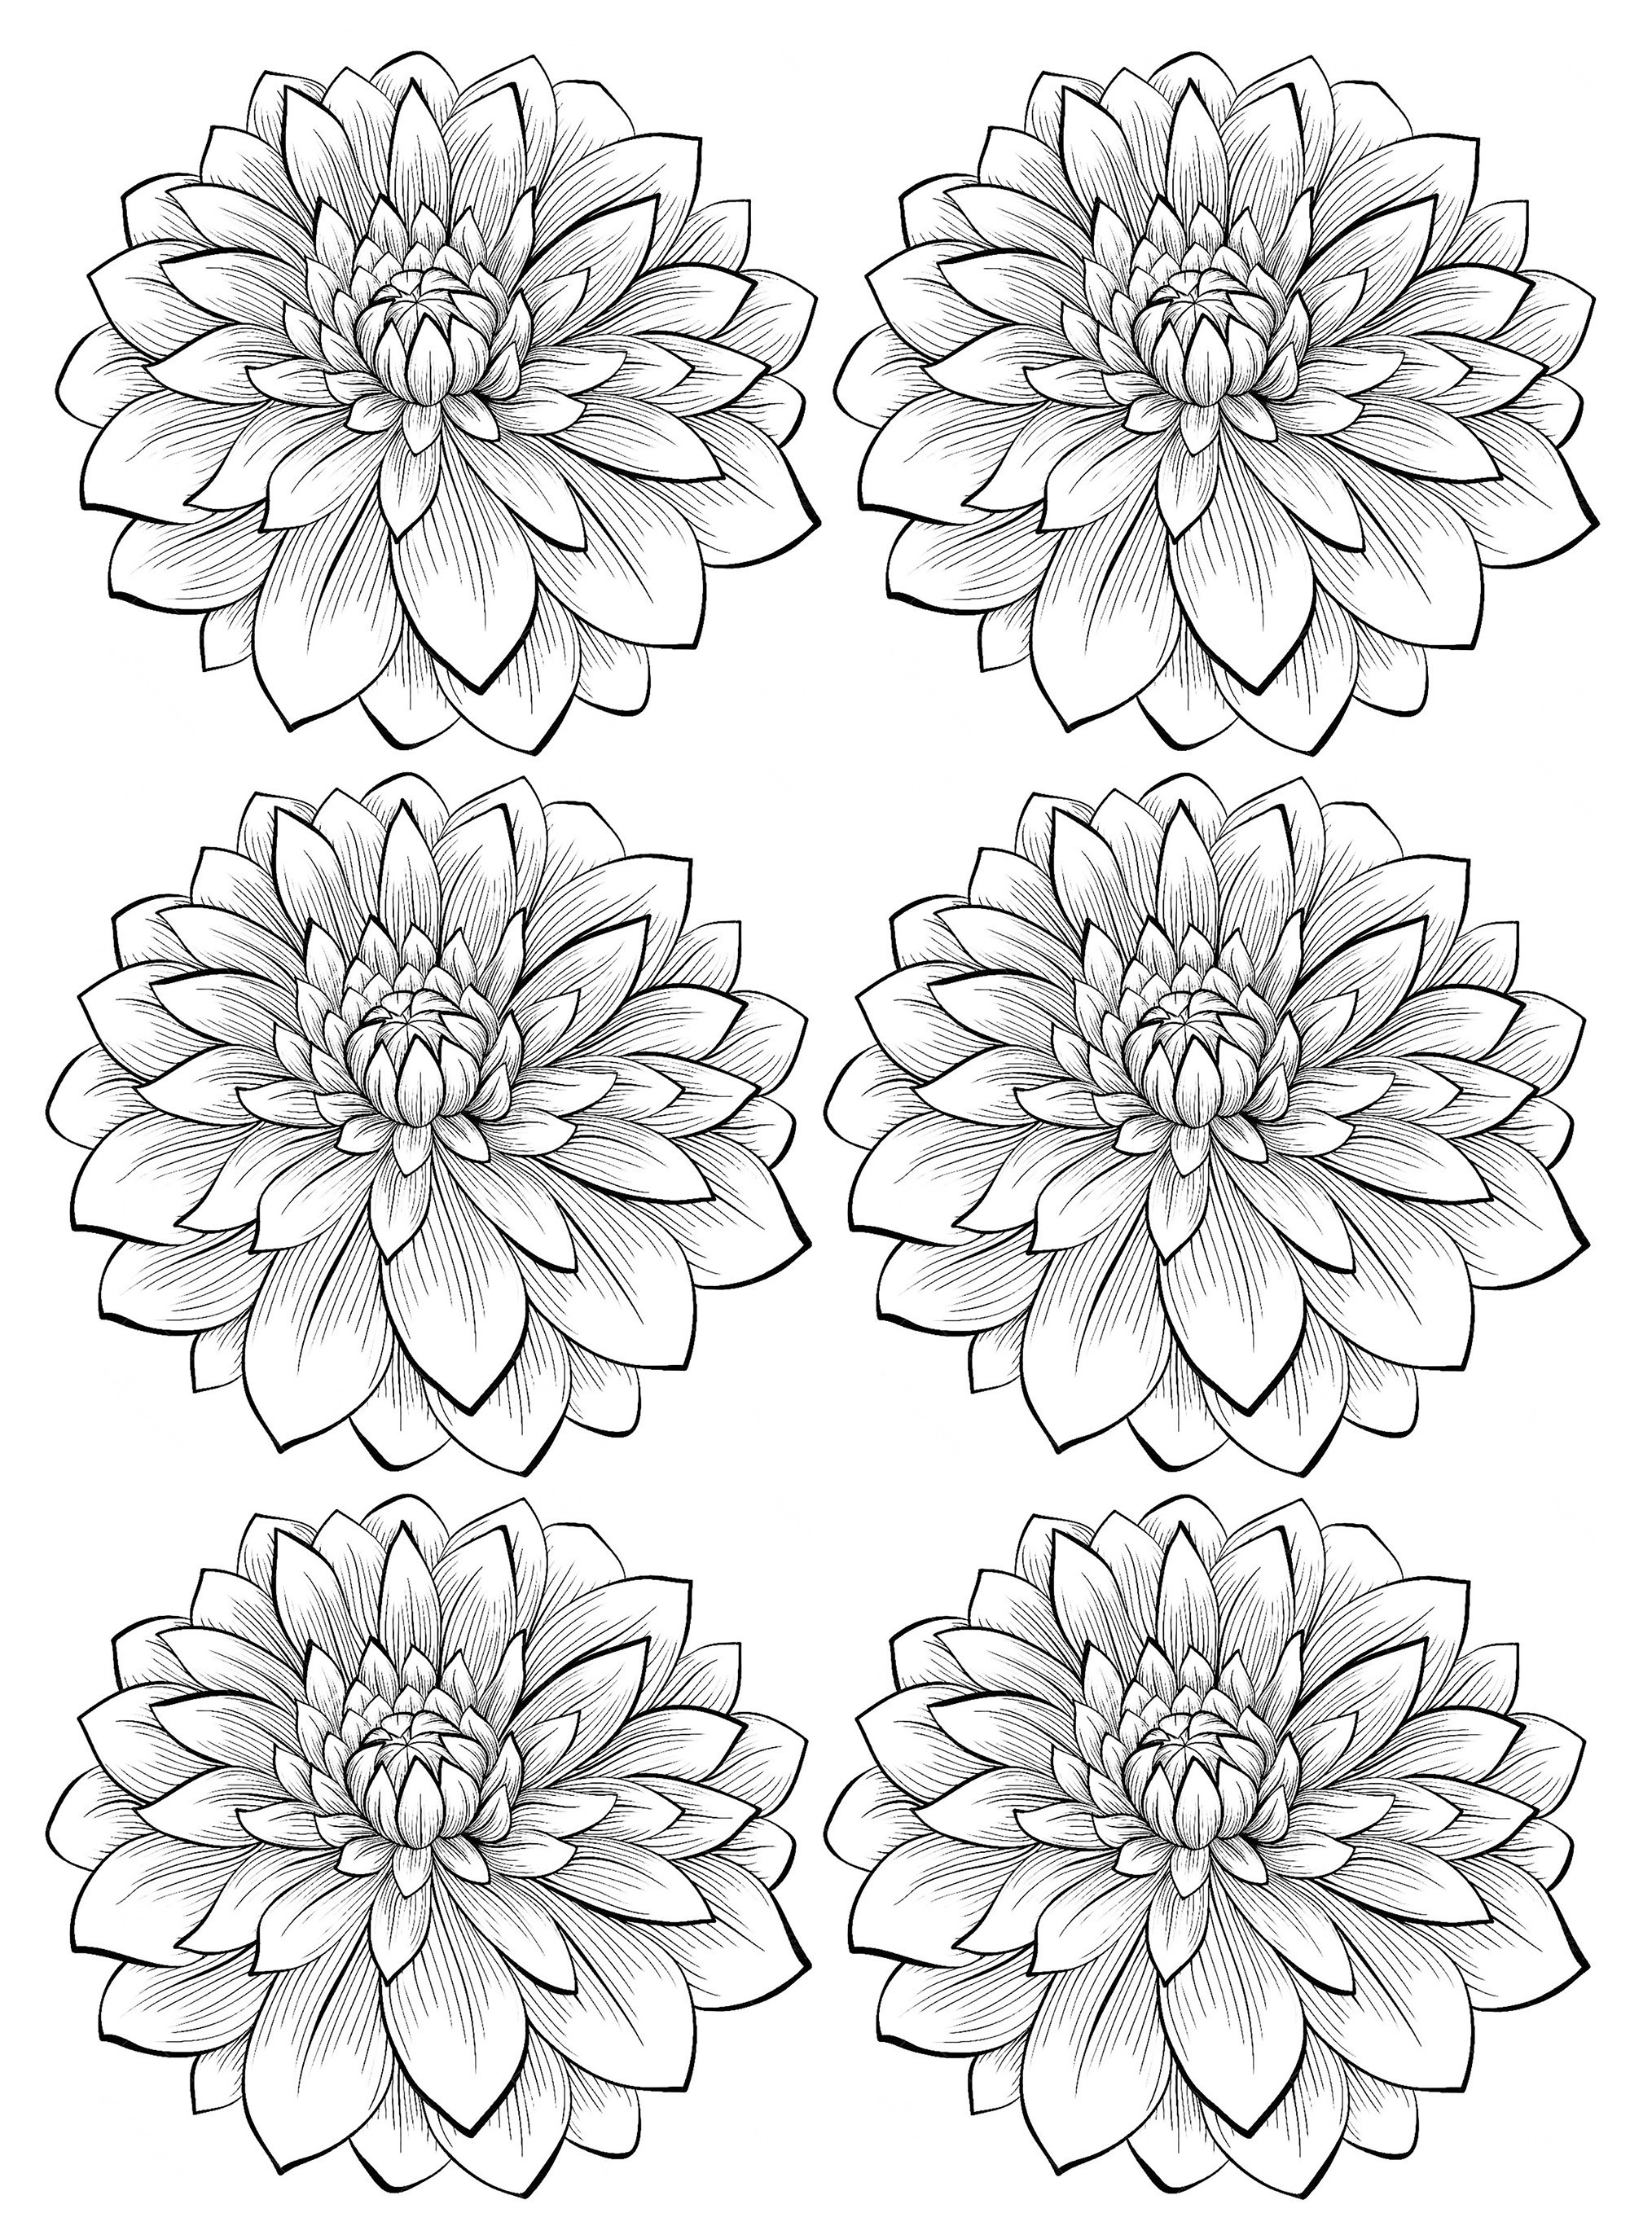 coloring flowers for adults flower coloring pages for adults best coloring pages for flowers coloring adults for